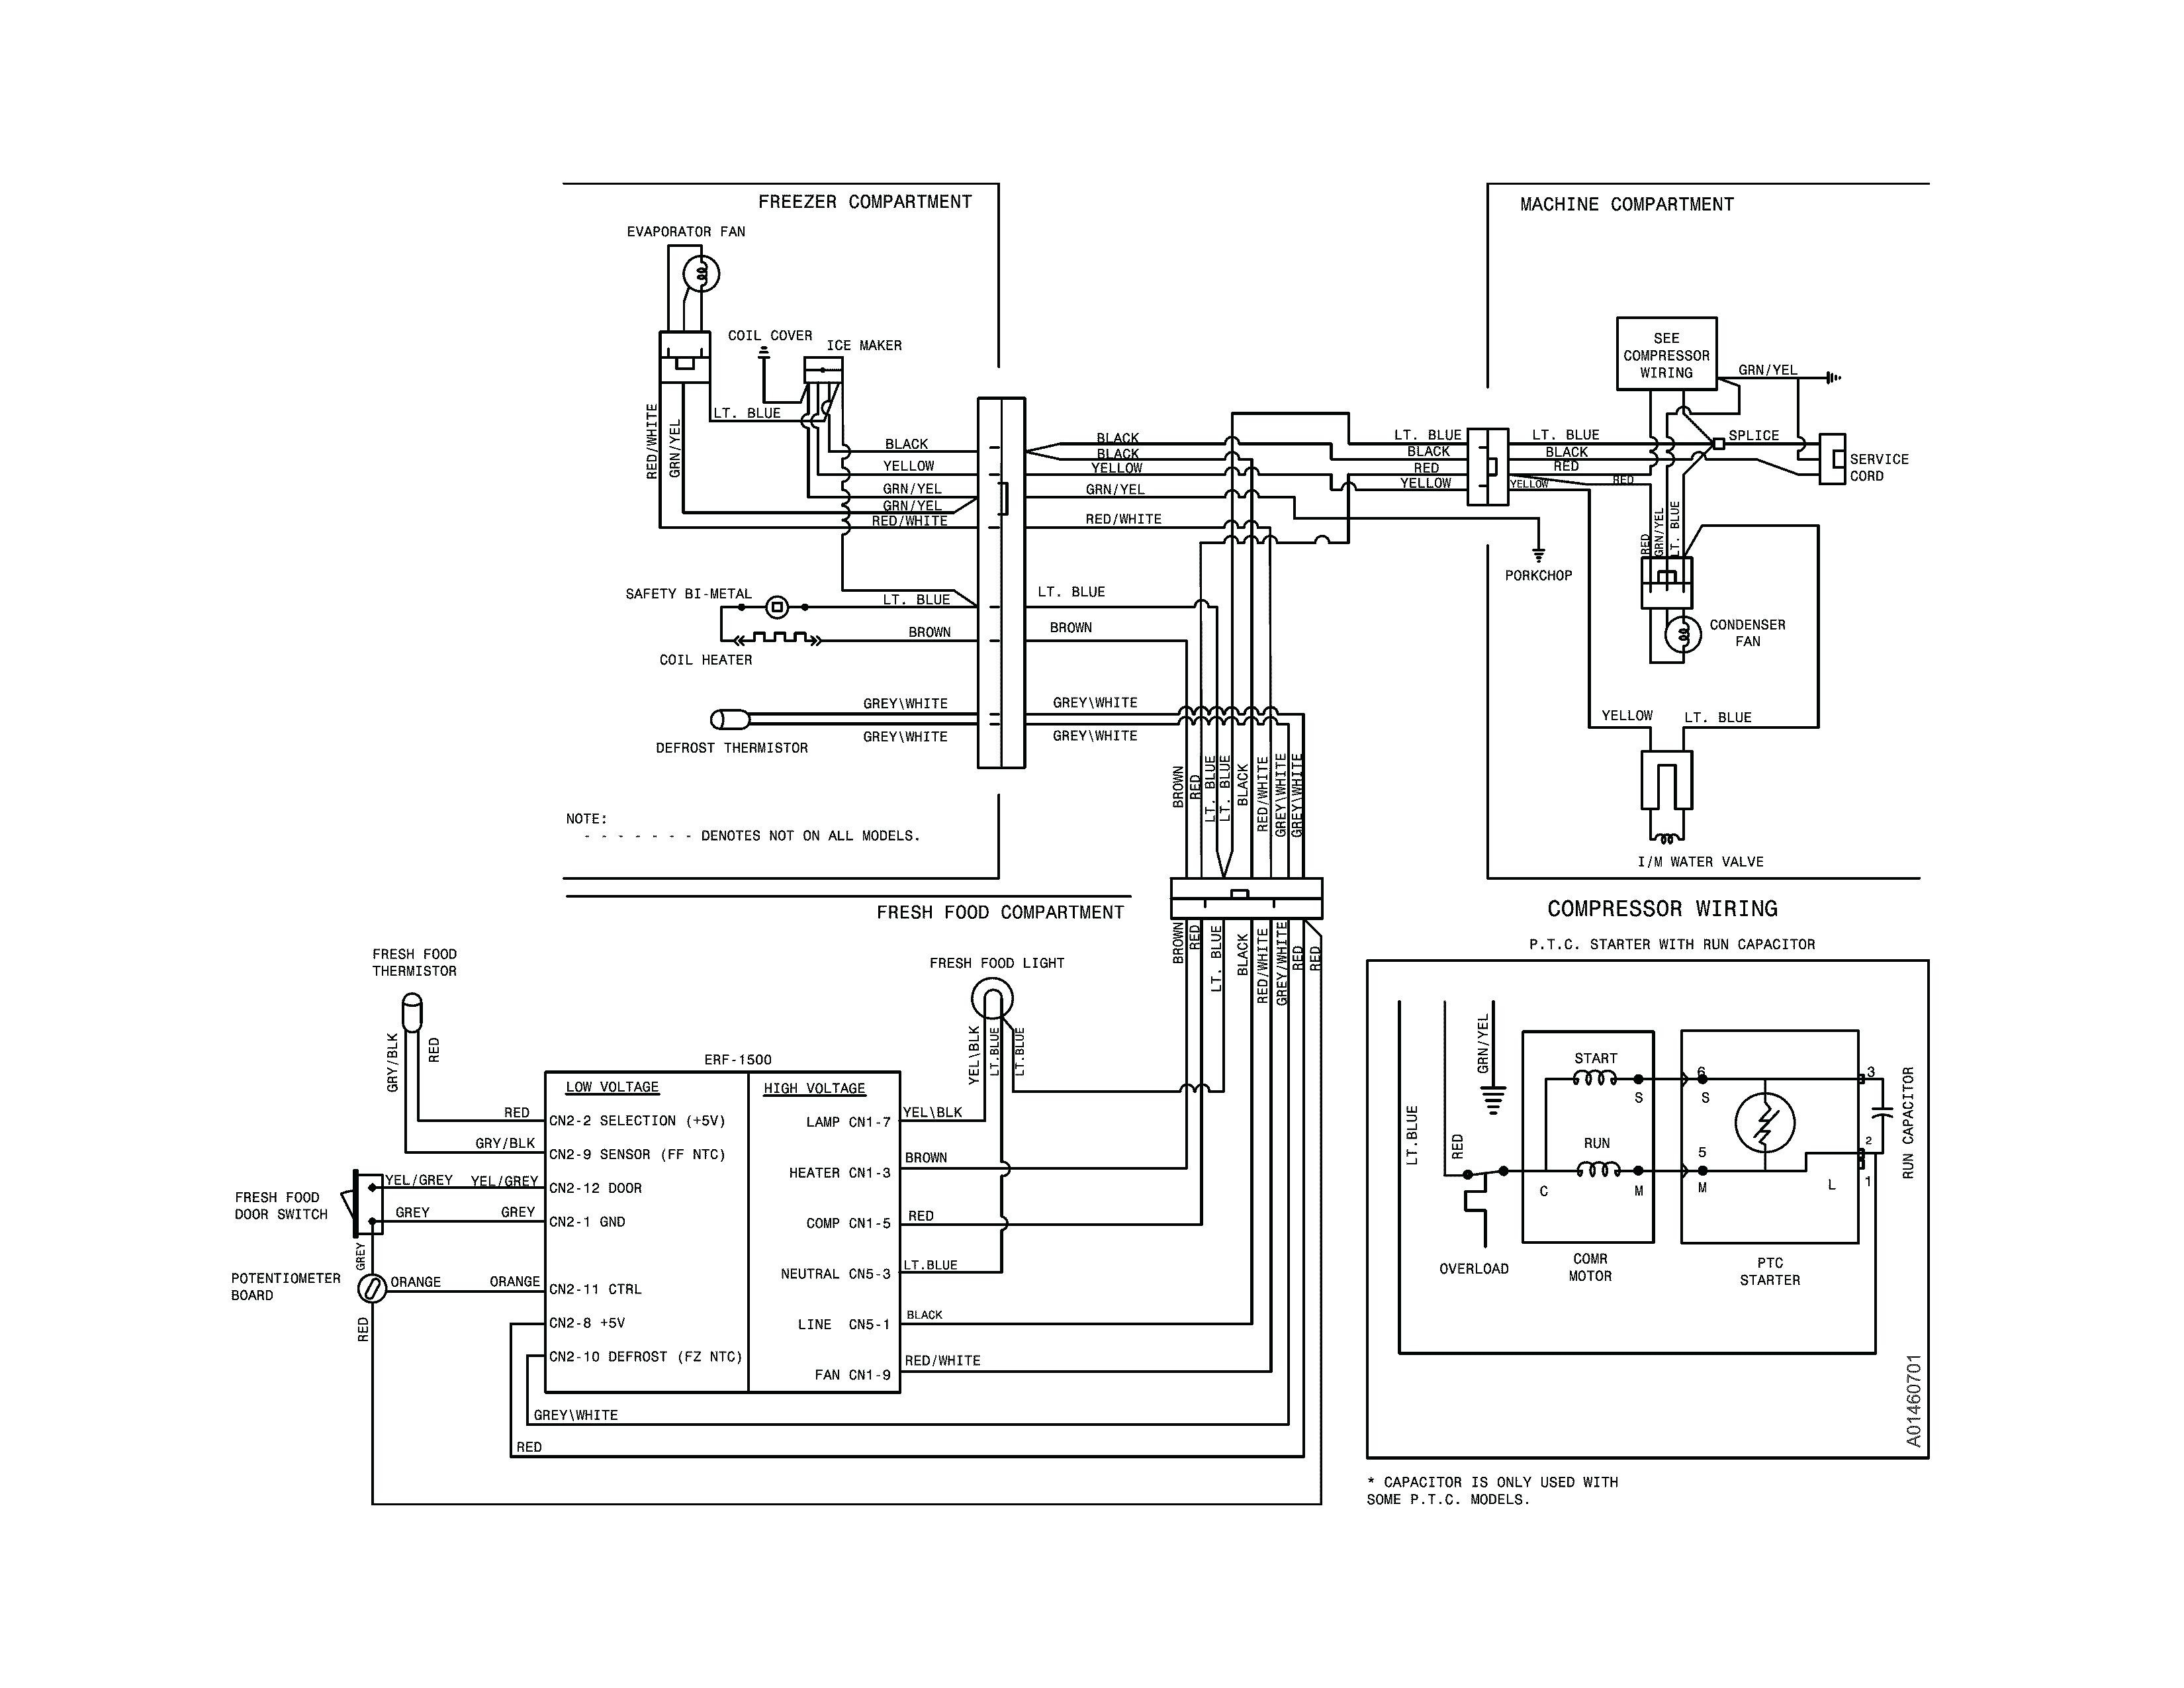 frigidaire refrigerator wiring diagram Download-frigidaire refrigerator wiring diagram Download wiring diagram for trailer lights and electric brakes refrigerator best DOWNLOAD Wiring Diagram 10-b